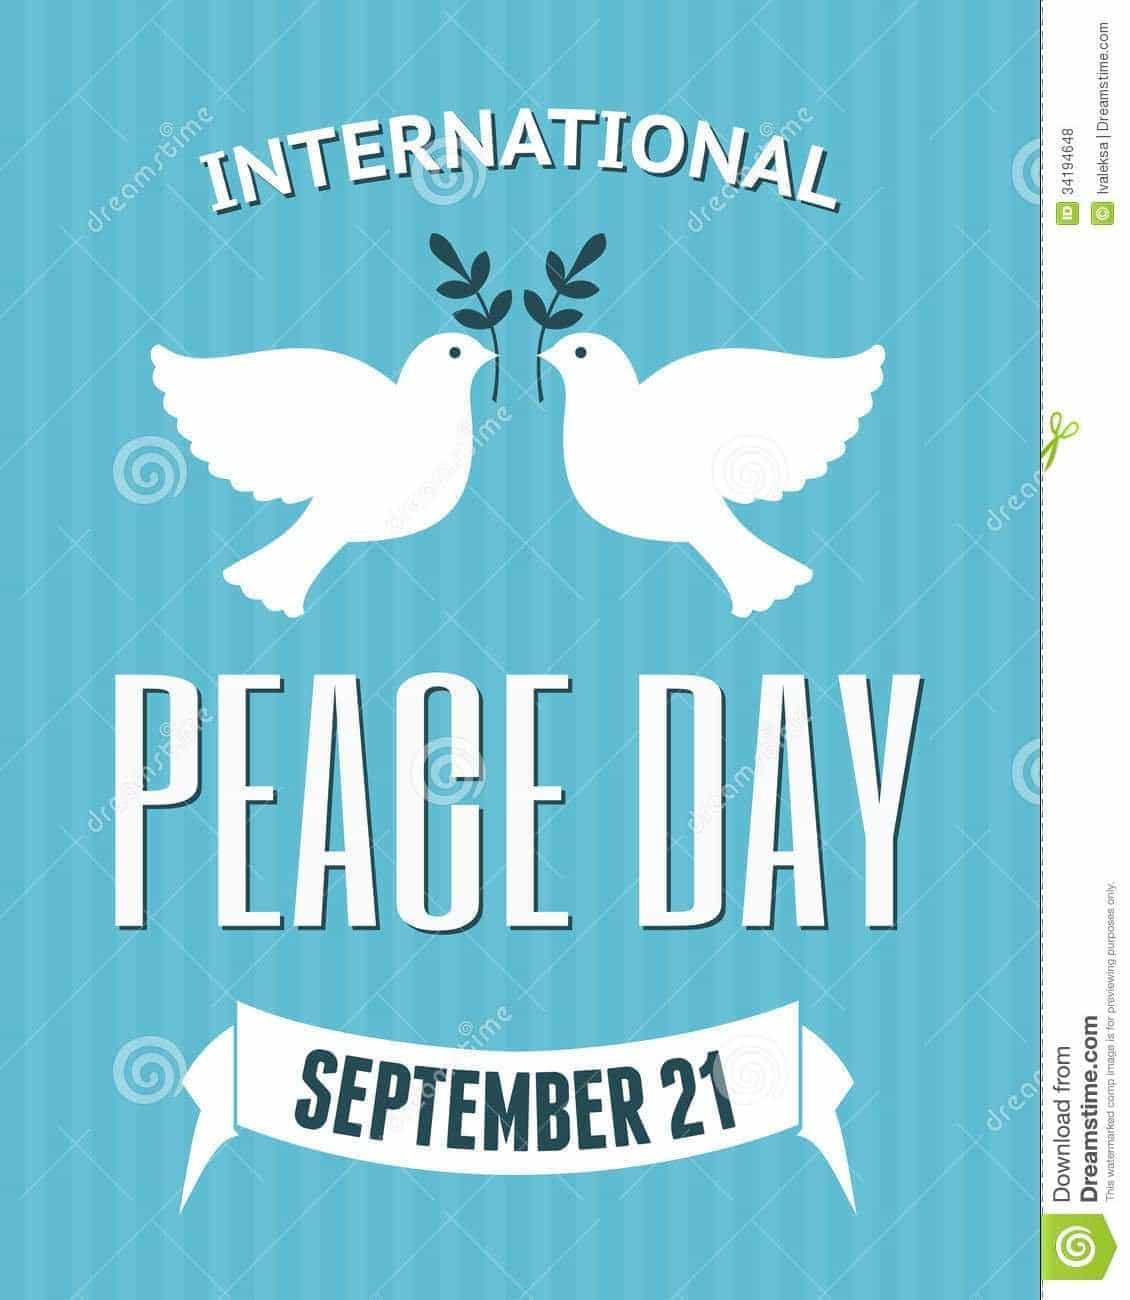 Quotes About World Peace Day: National World Peace Day 2017 Quotes Activities